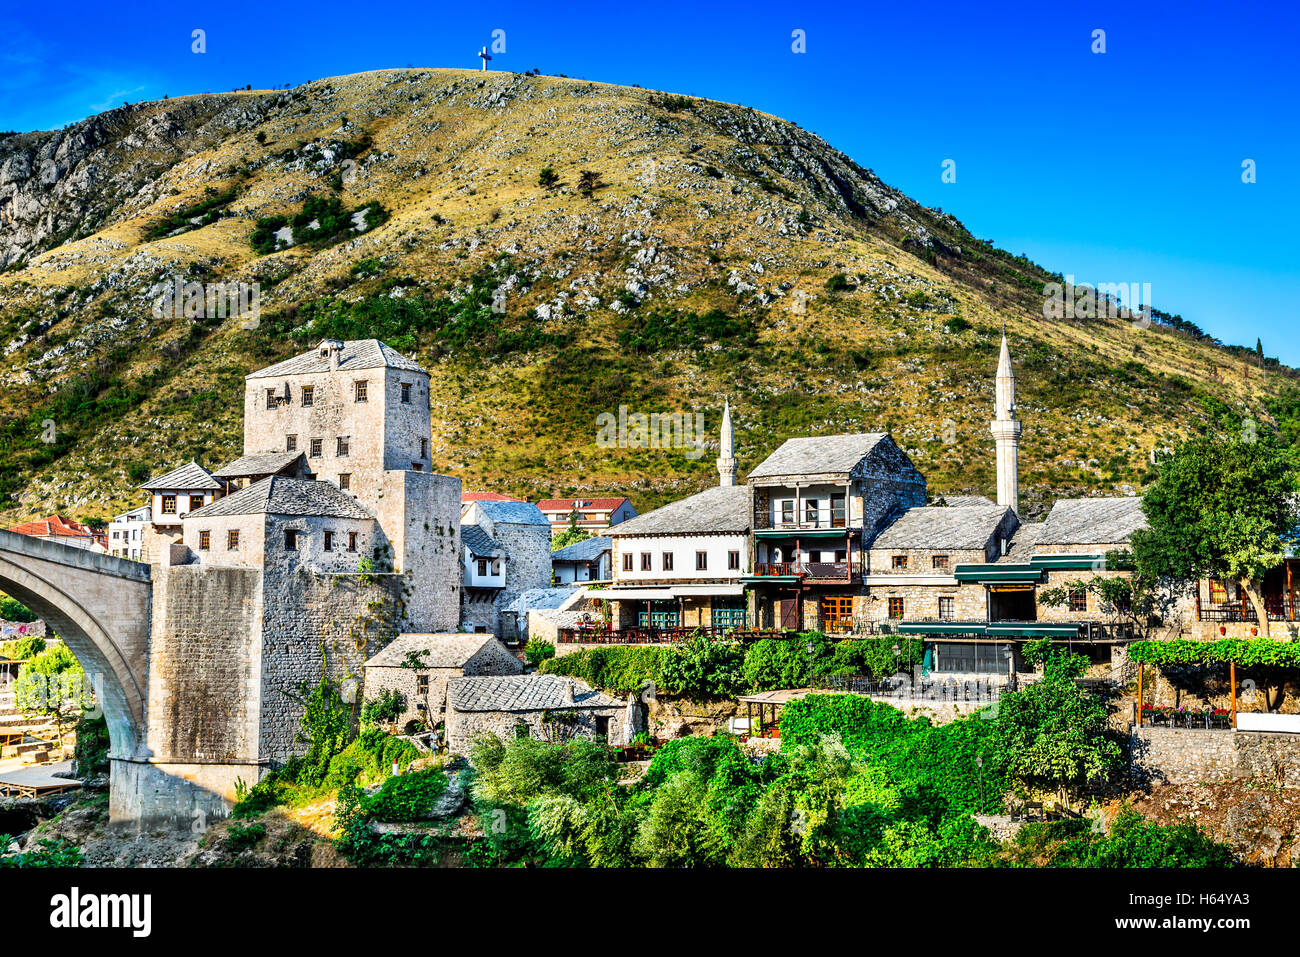 Mostar, Bosnia and Herzegovina. The Old Bridge, Stari Most, with emerald river Neretva. - Stock Image